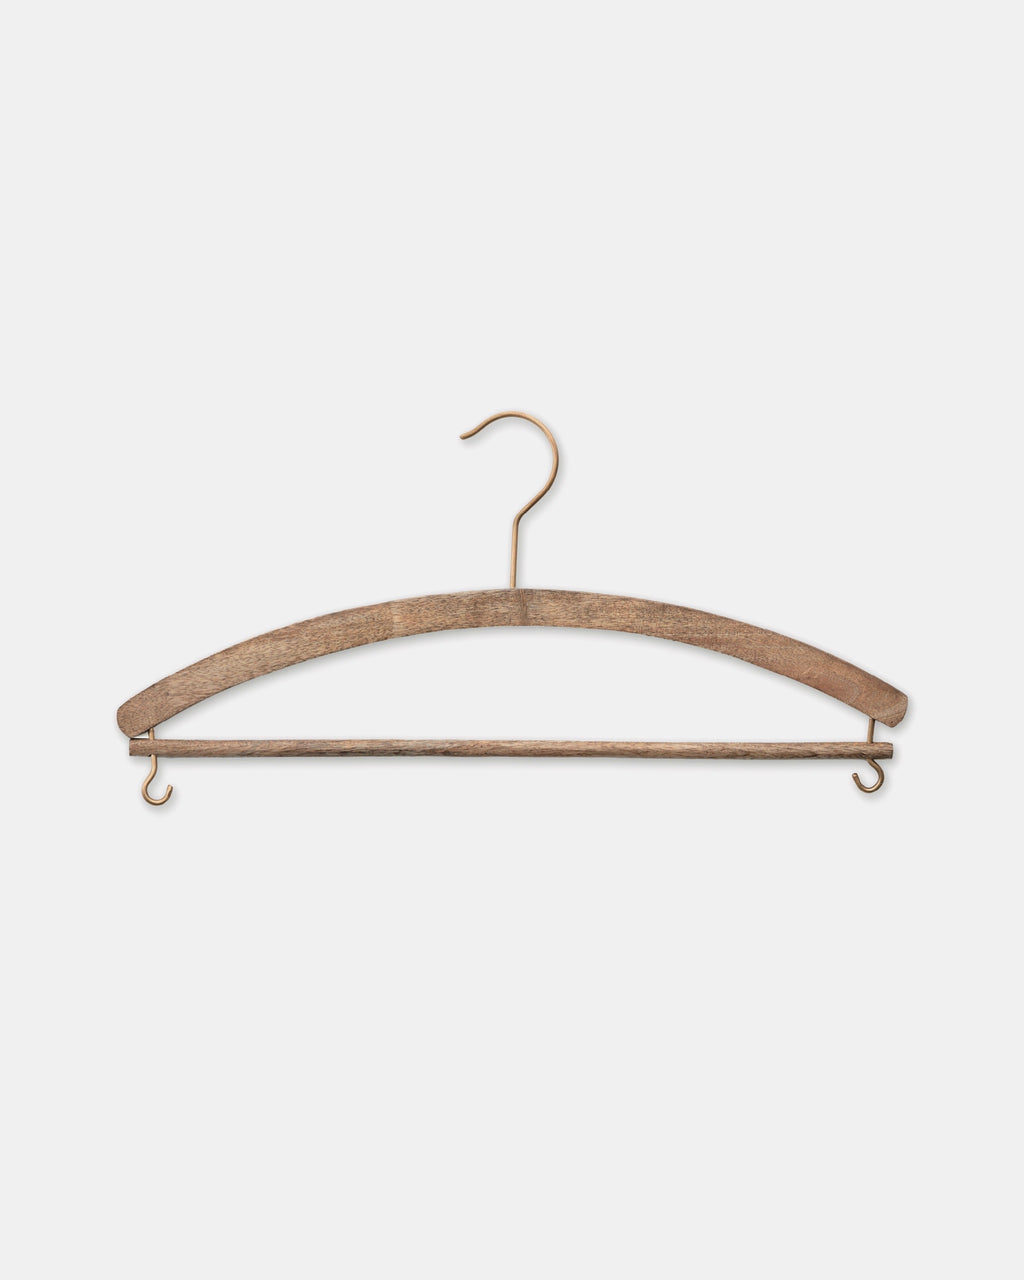 Mango Wood Skirt Hanger